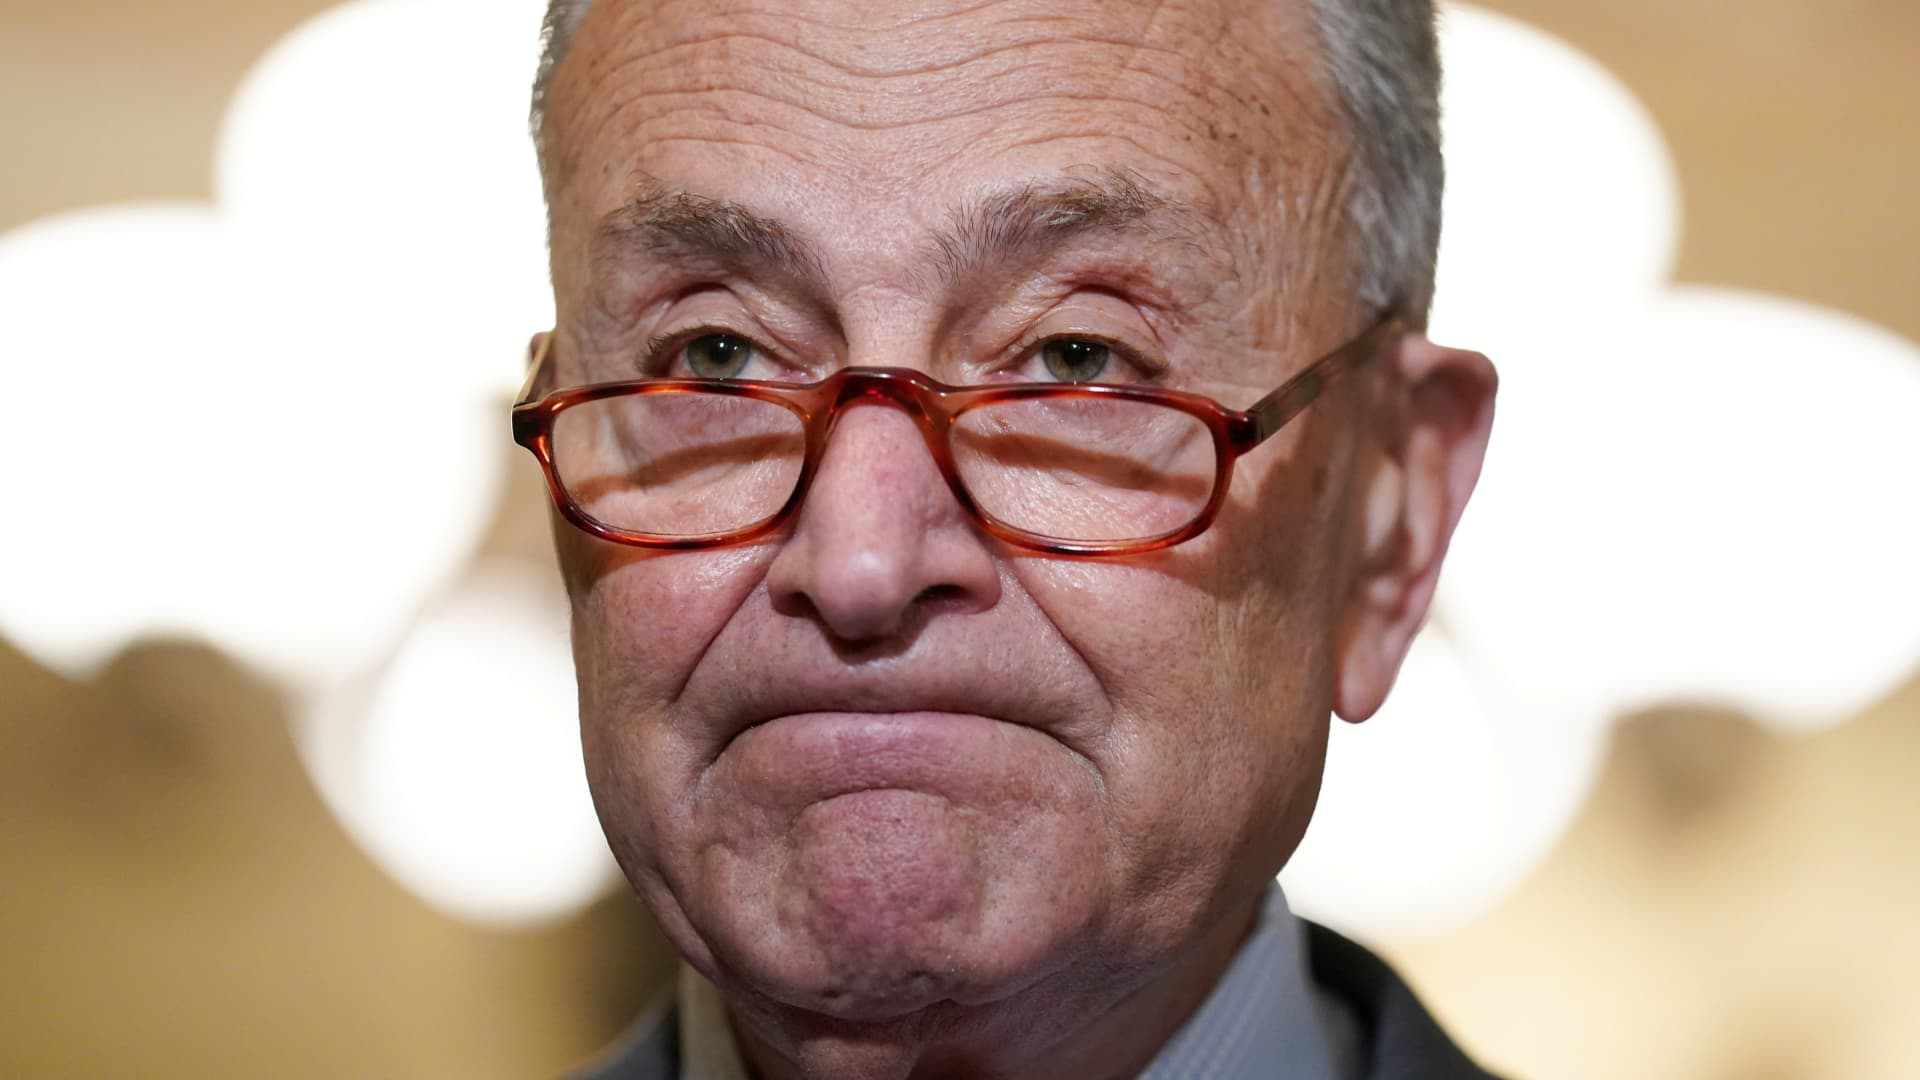 U.S. Senate Majority Chuck Schumer (D-NY) looks up after reading a statement calling for the resignation of New York Governor Andrew Cuomo at the U.S. Capitol in Washington, August 3, 2021.